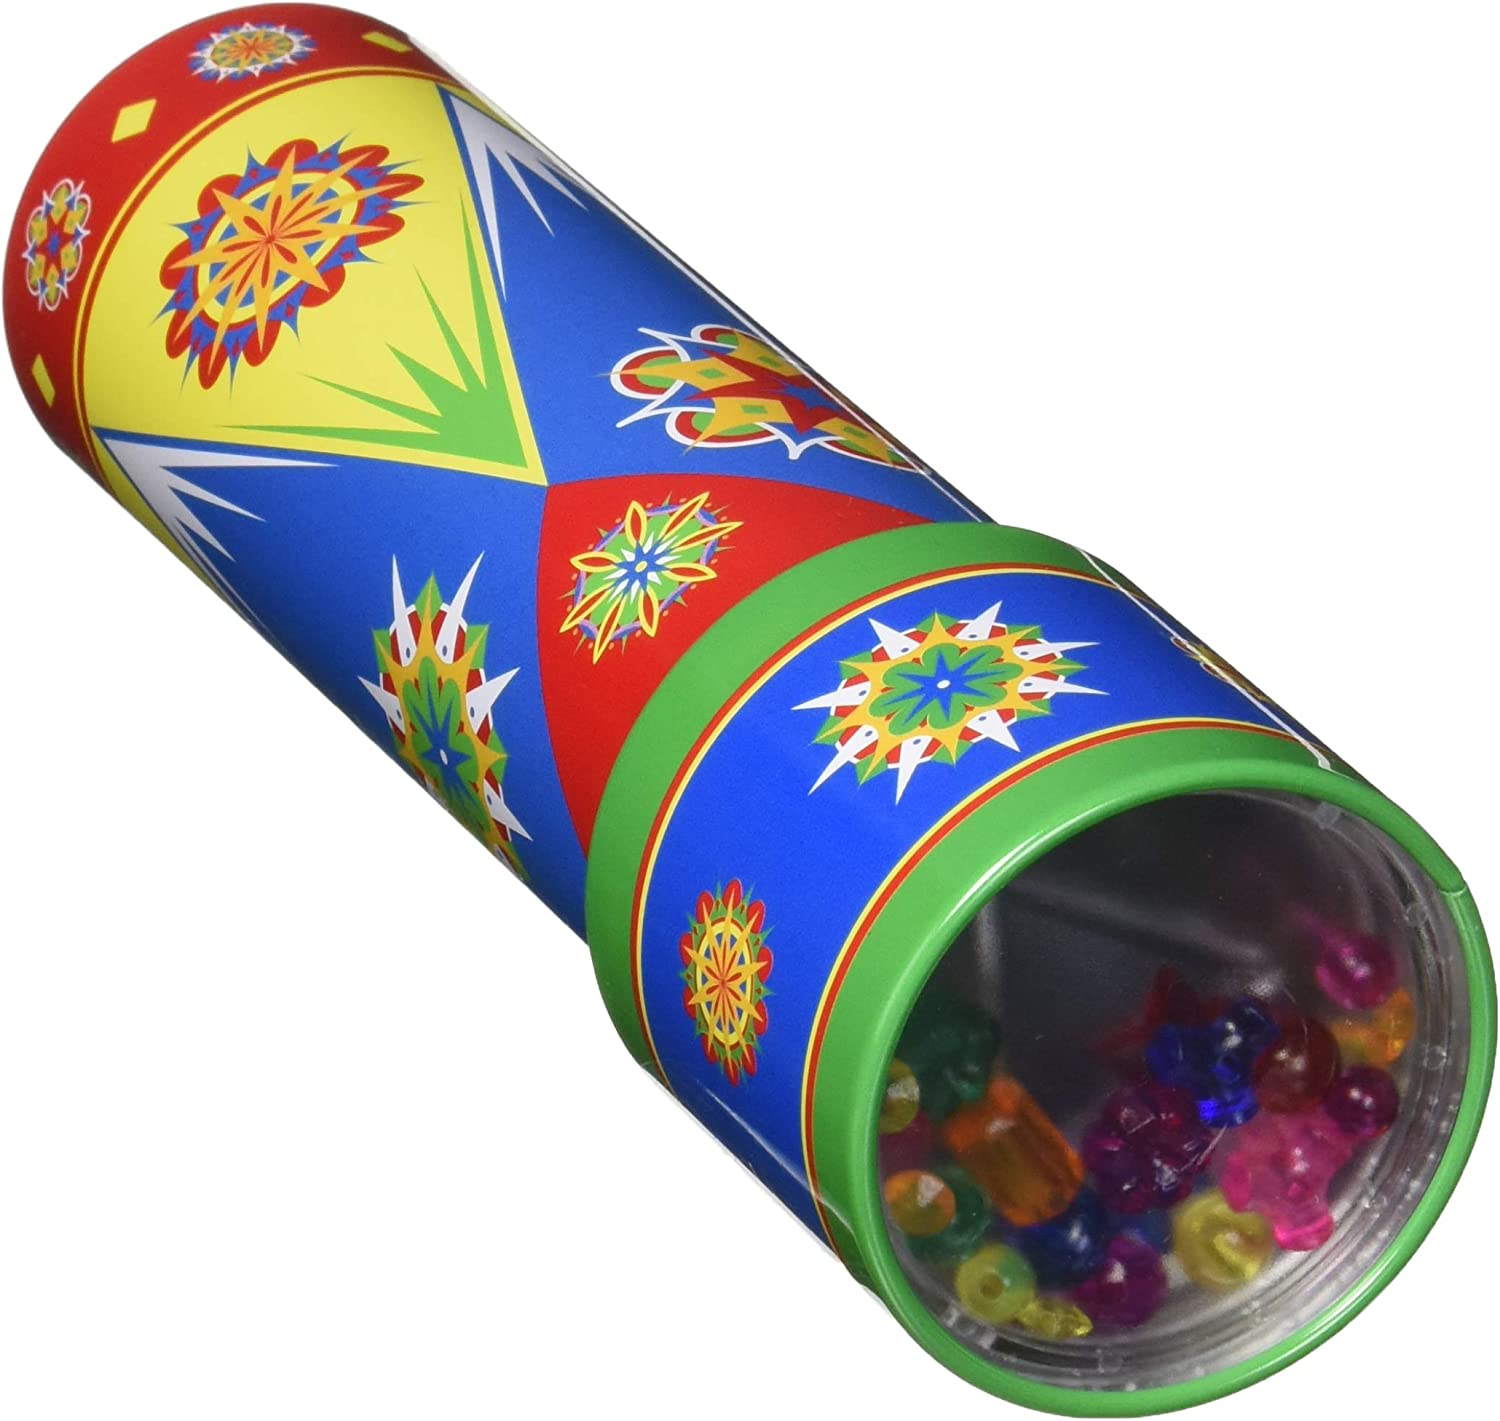 Goki Outlet sale feature Rotatable Top Free shipping anywhere in the nation Kaleidoscope